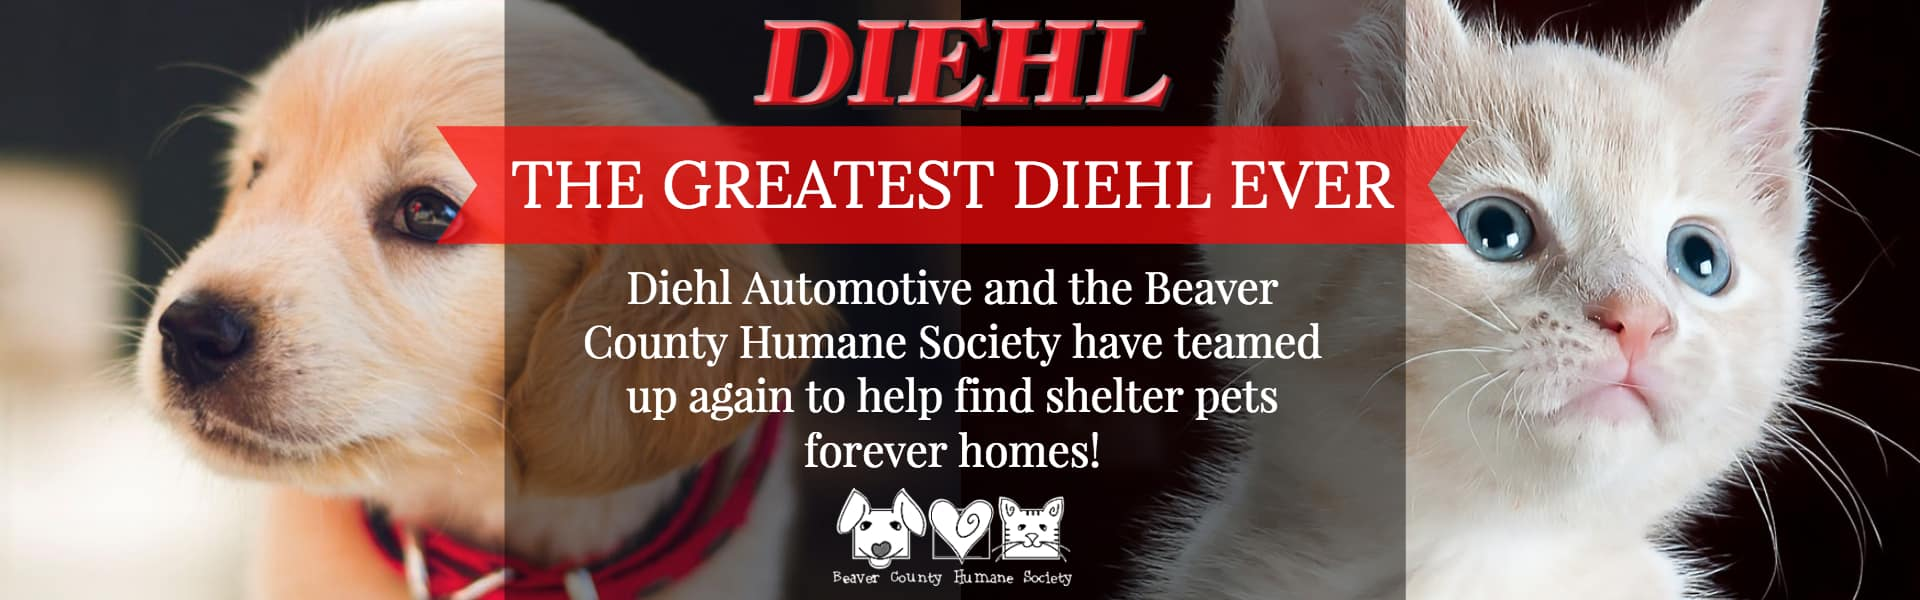 greatest diehl ever diehl automotive beaver county humane society bchs adoption pets pet adoption cats dogs rabbits puppies kitties donate rescue